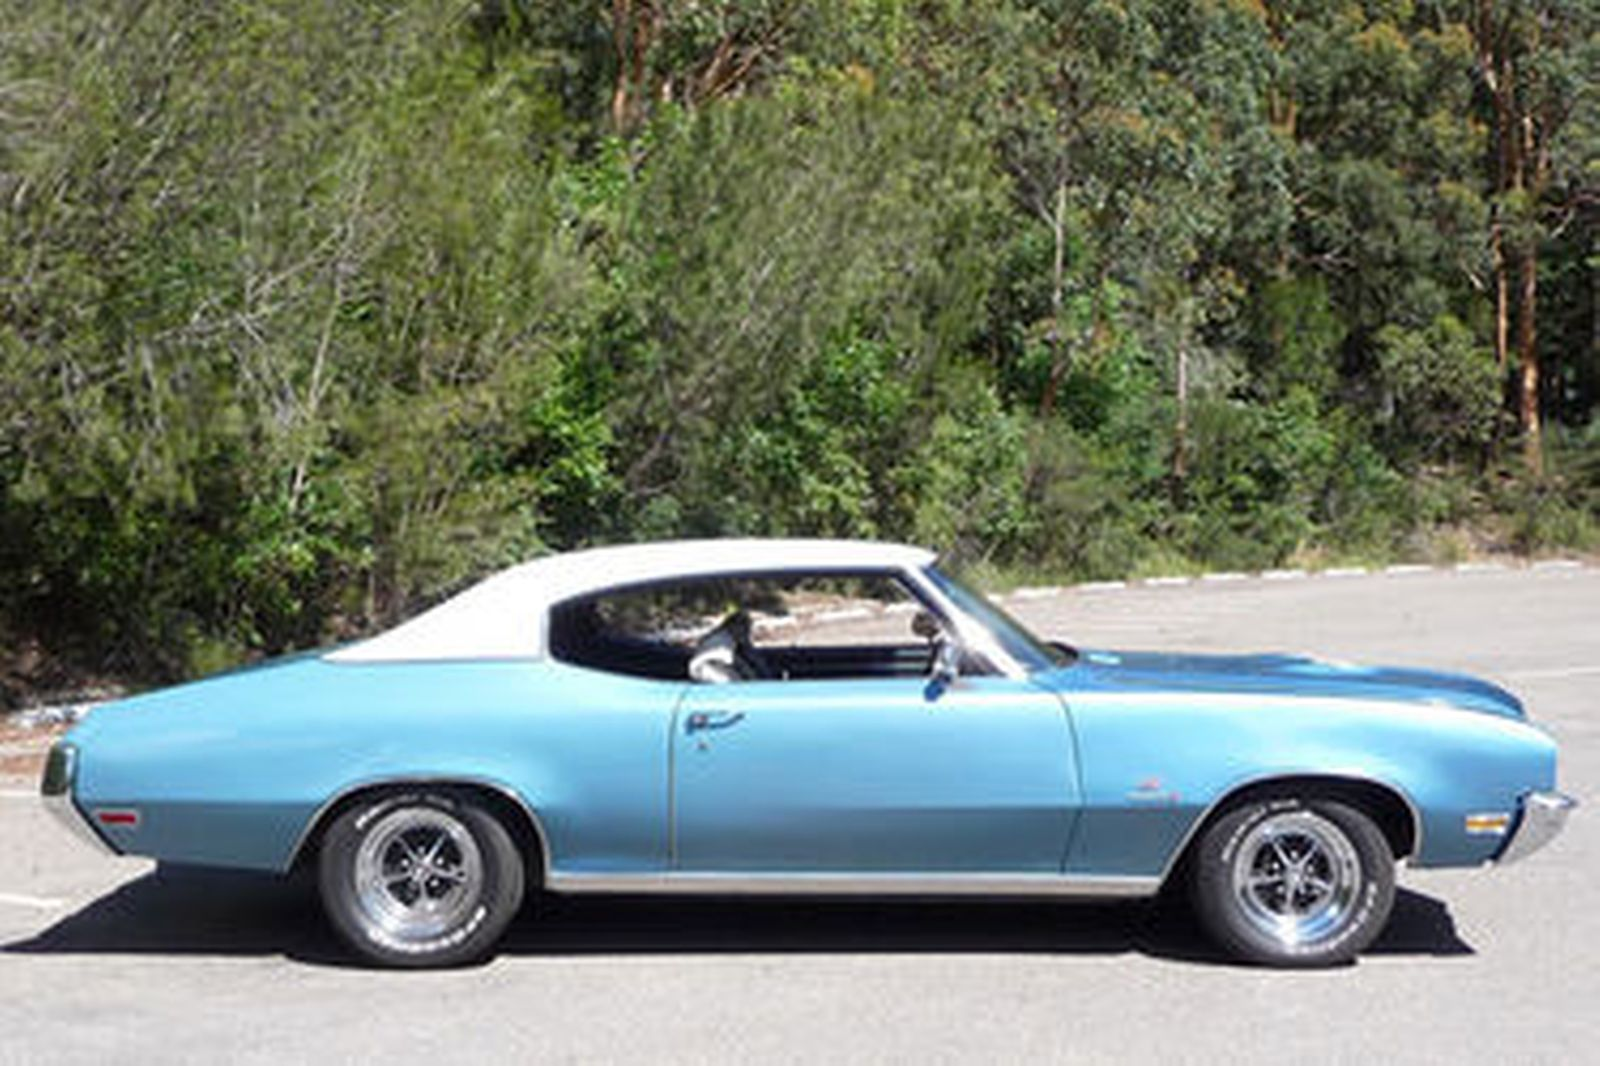 Buick GS 455 'Stage 1' Coupe (RHD)